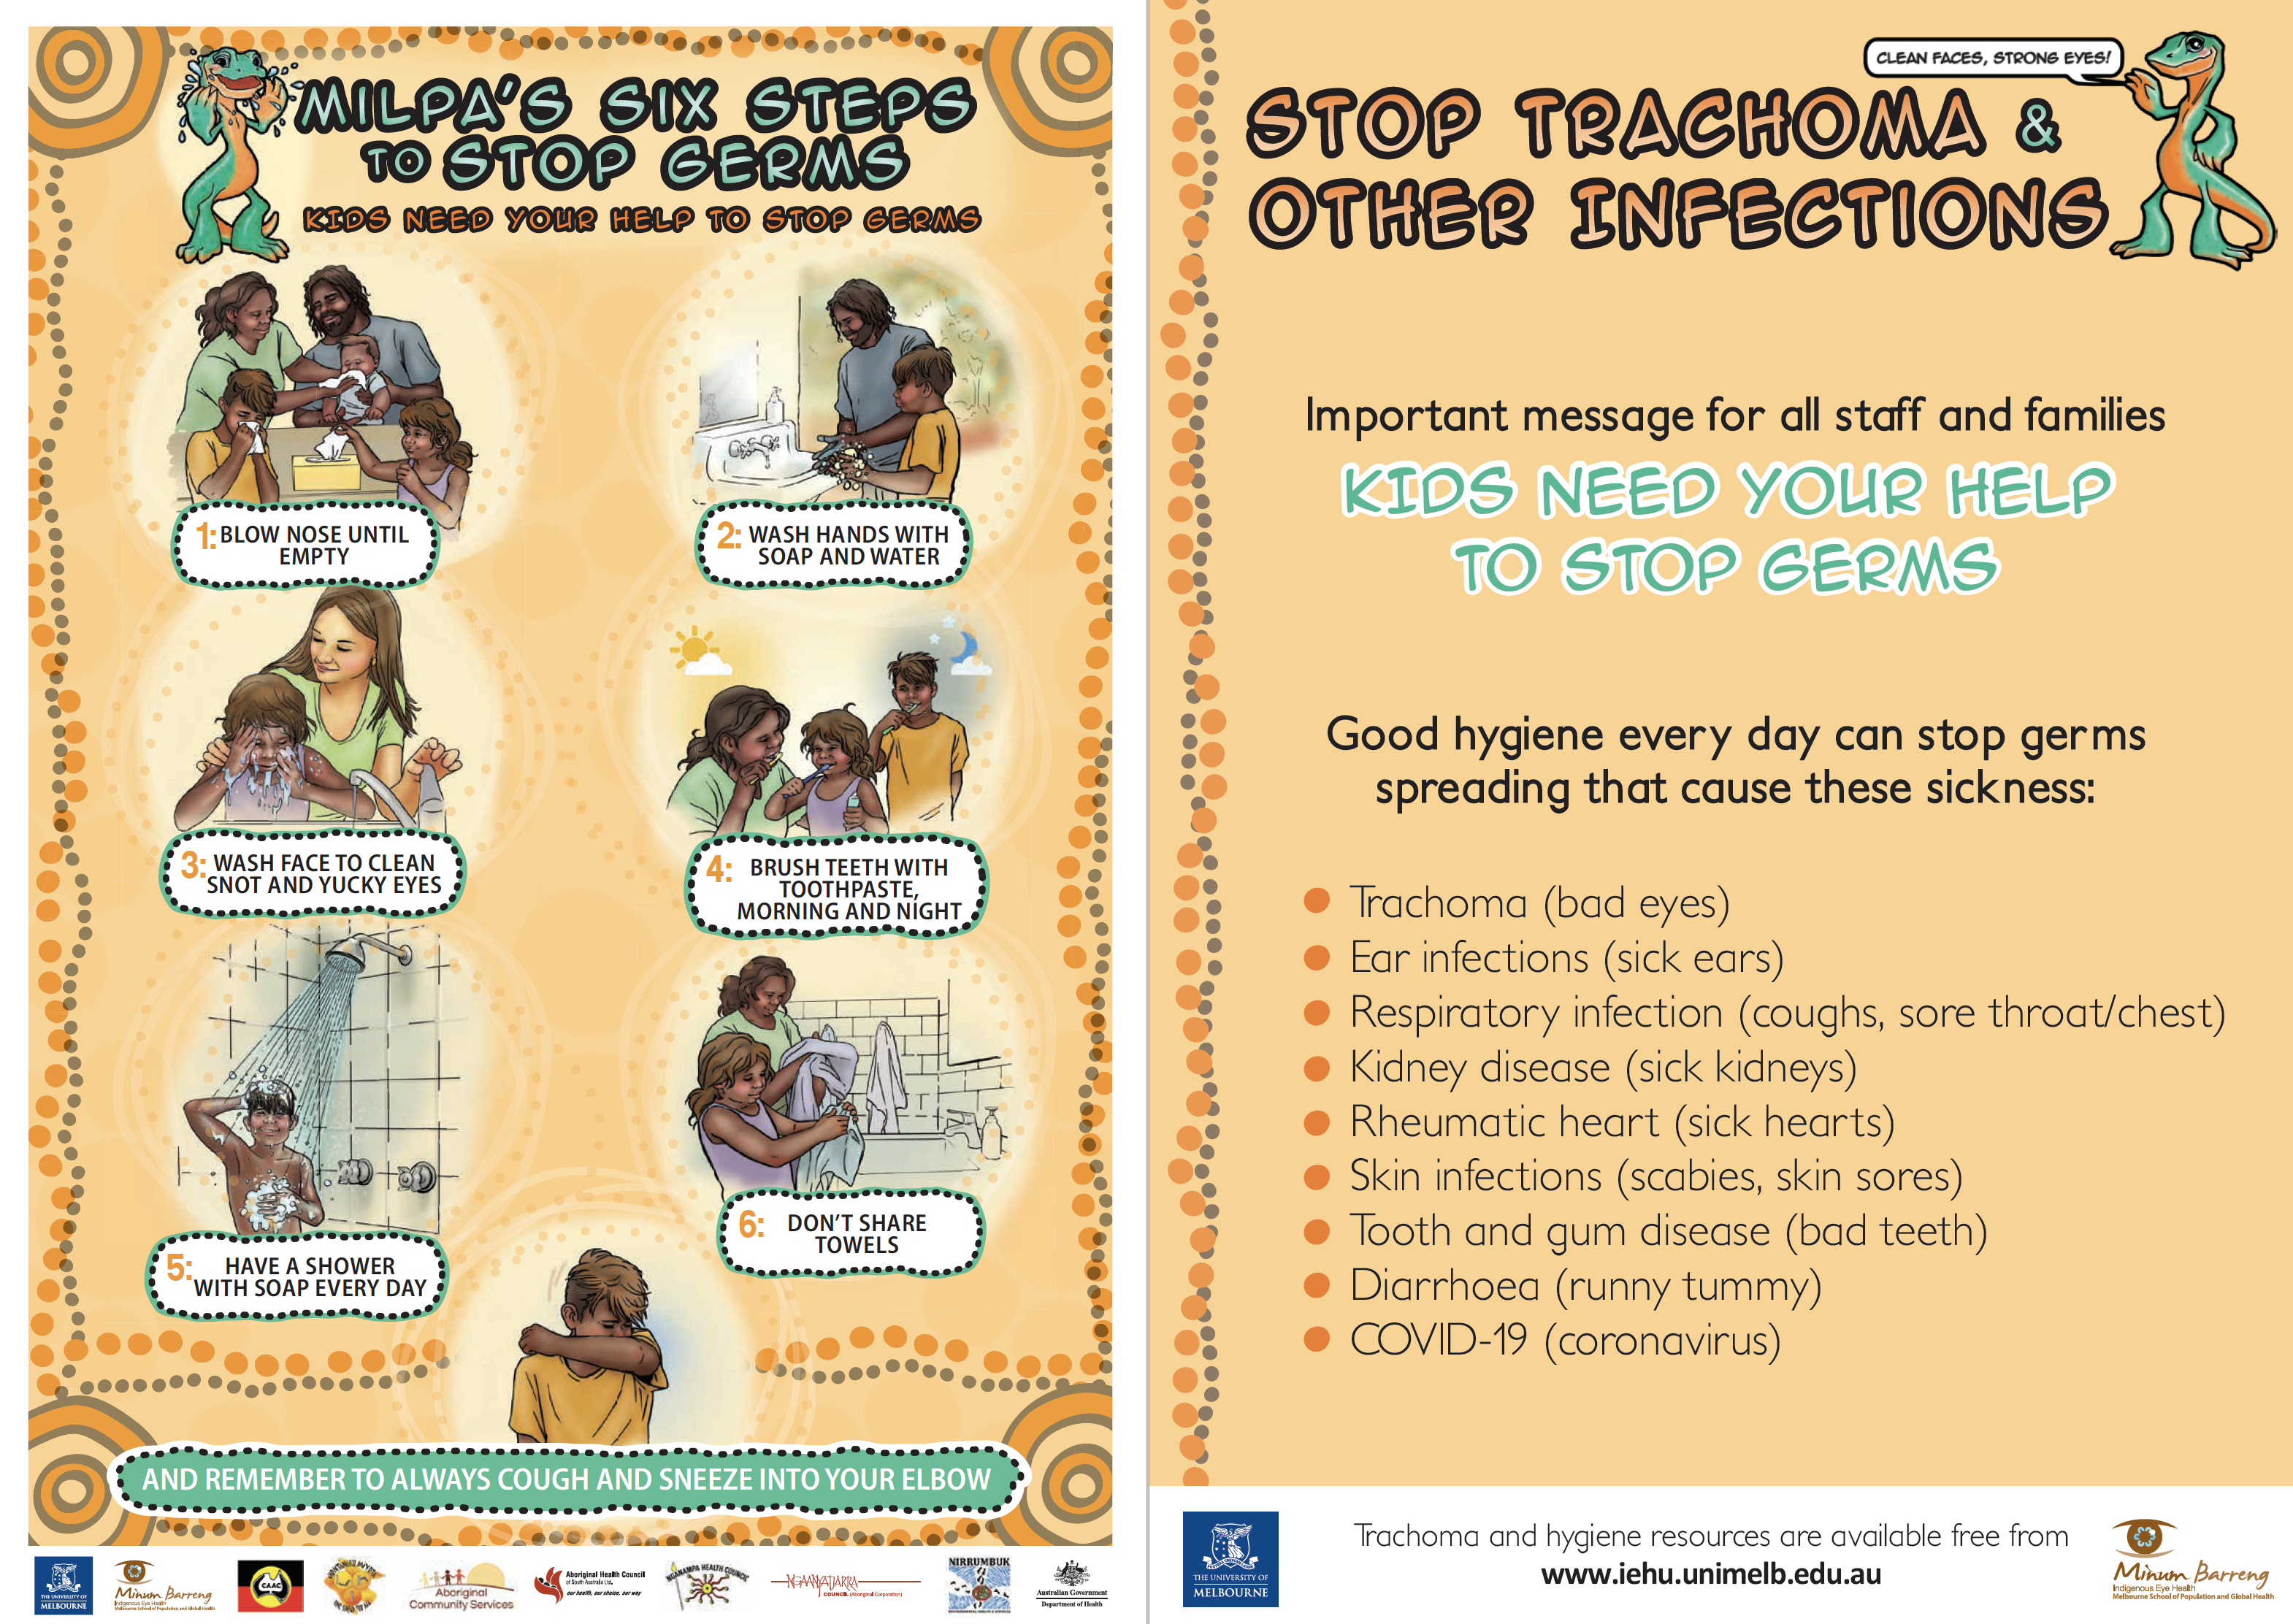 milpas six steps to stop trachoma two sided card